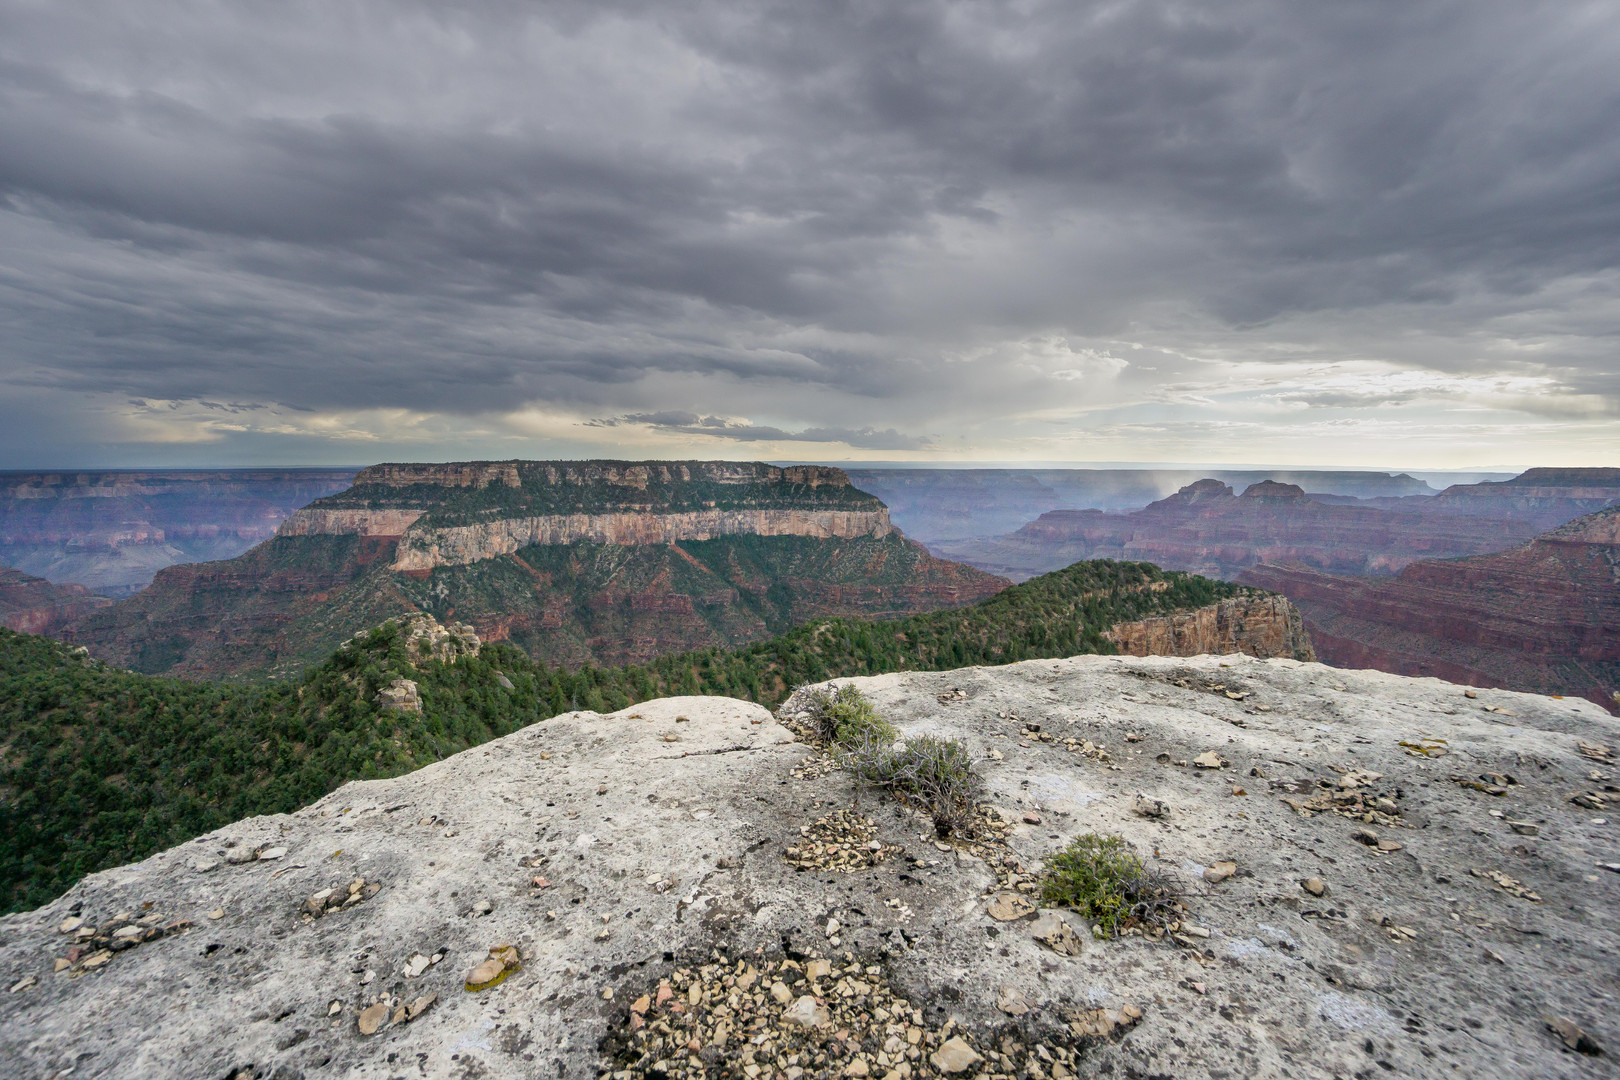 Storm over Grand Canyon